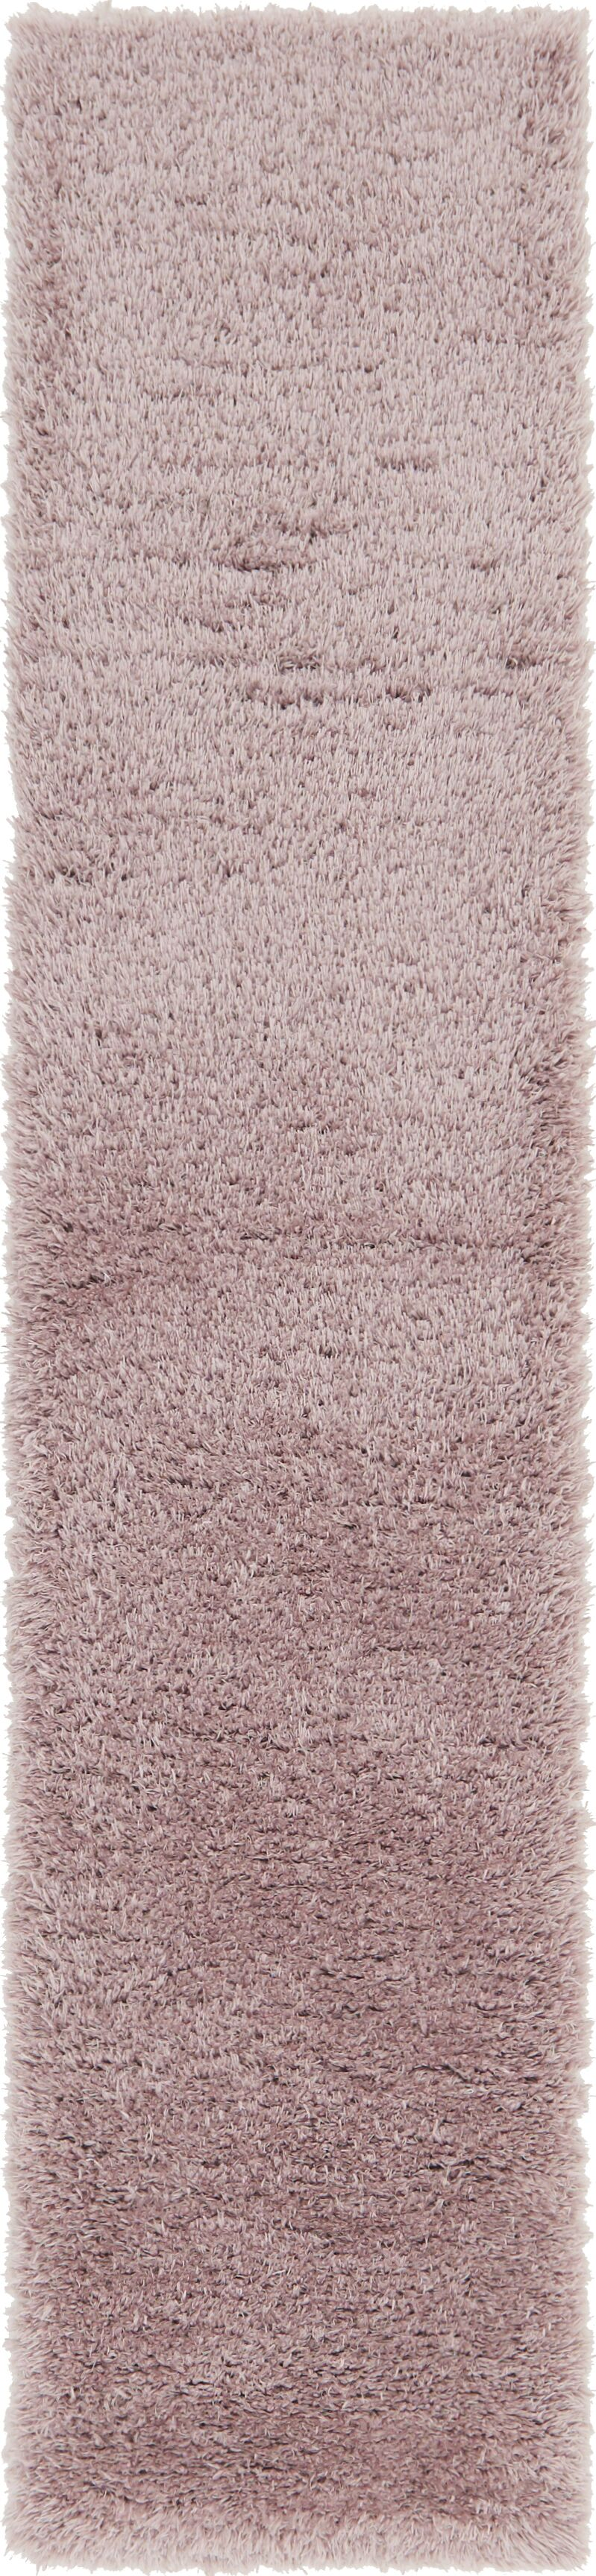 Pink Area Rug Rug Size: Runner 2' x 10'